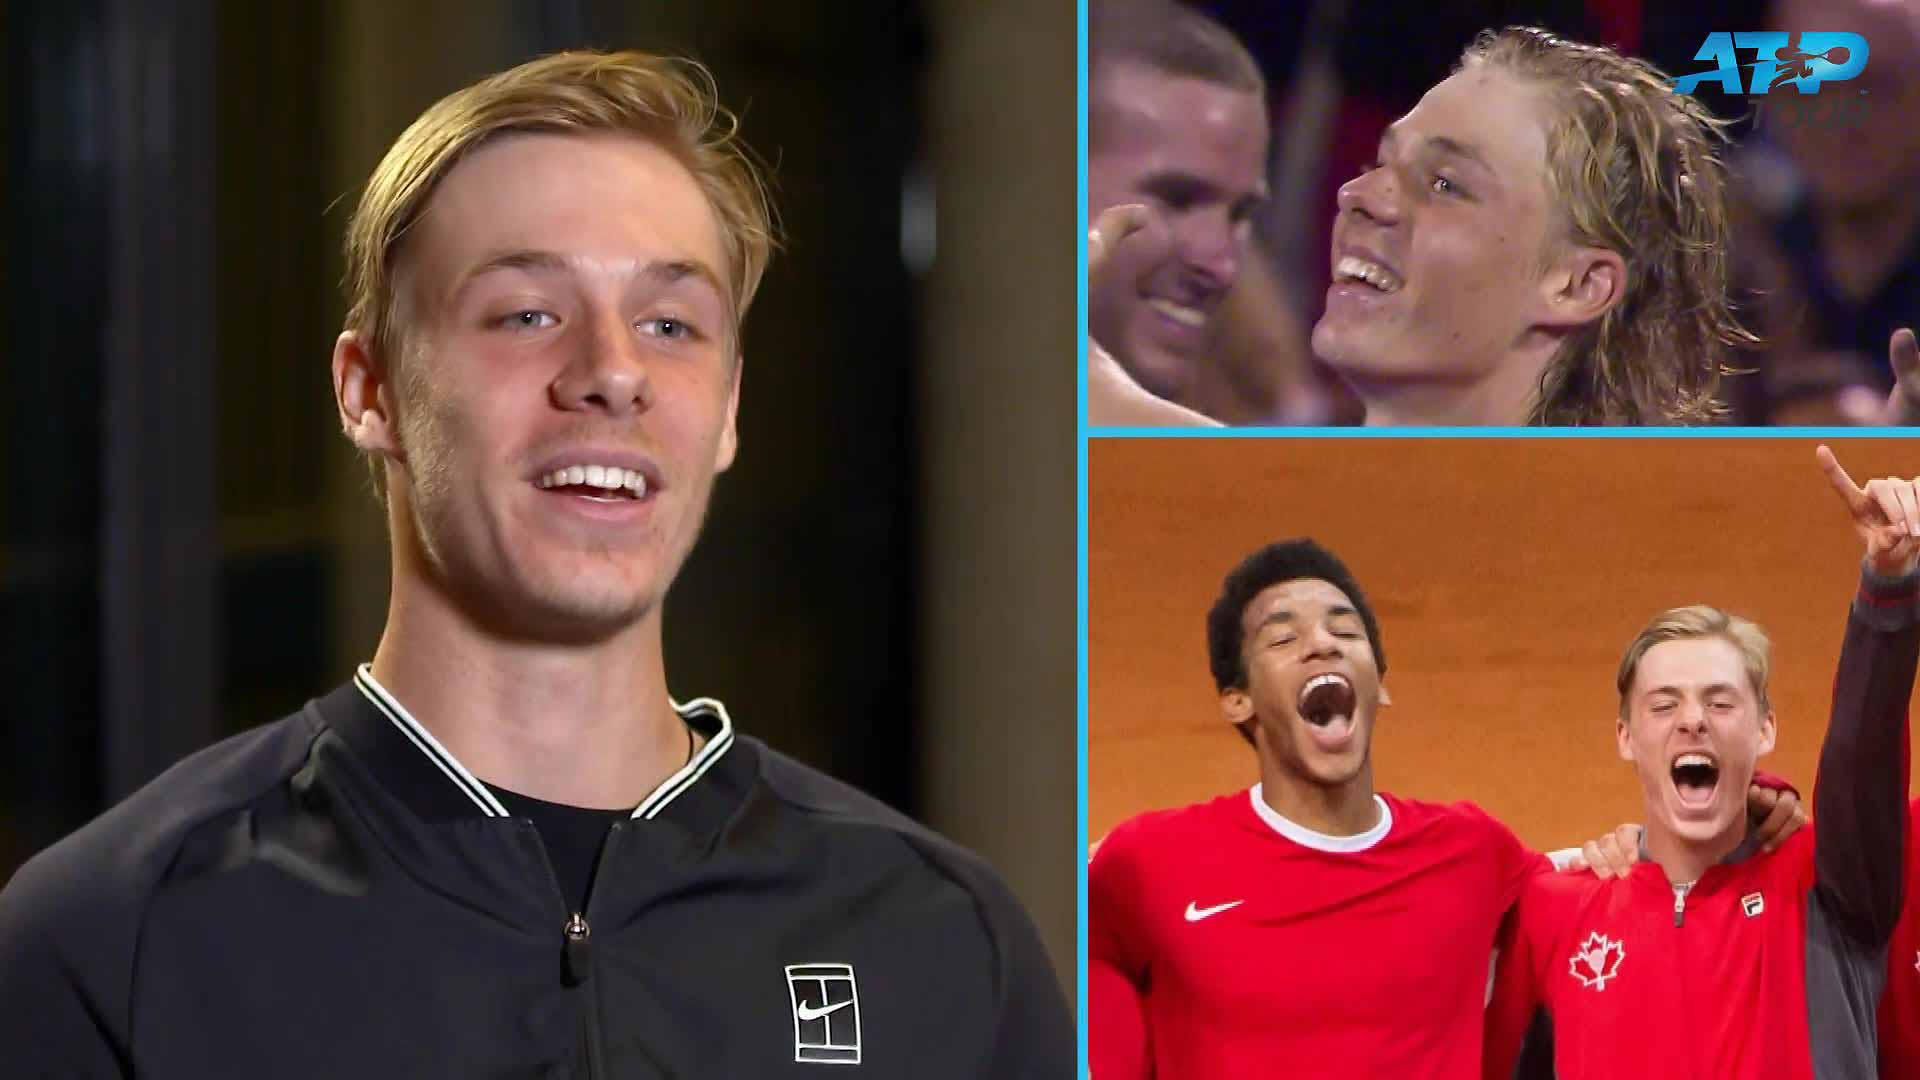 Denis Shapovalov looks back on the time he stayed at Felix Auger-Aliassime's house and took down his Rafael Nadal poster.